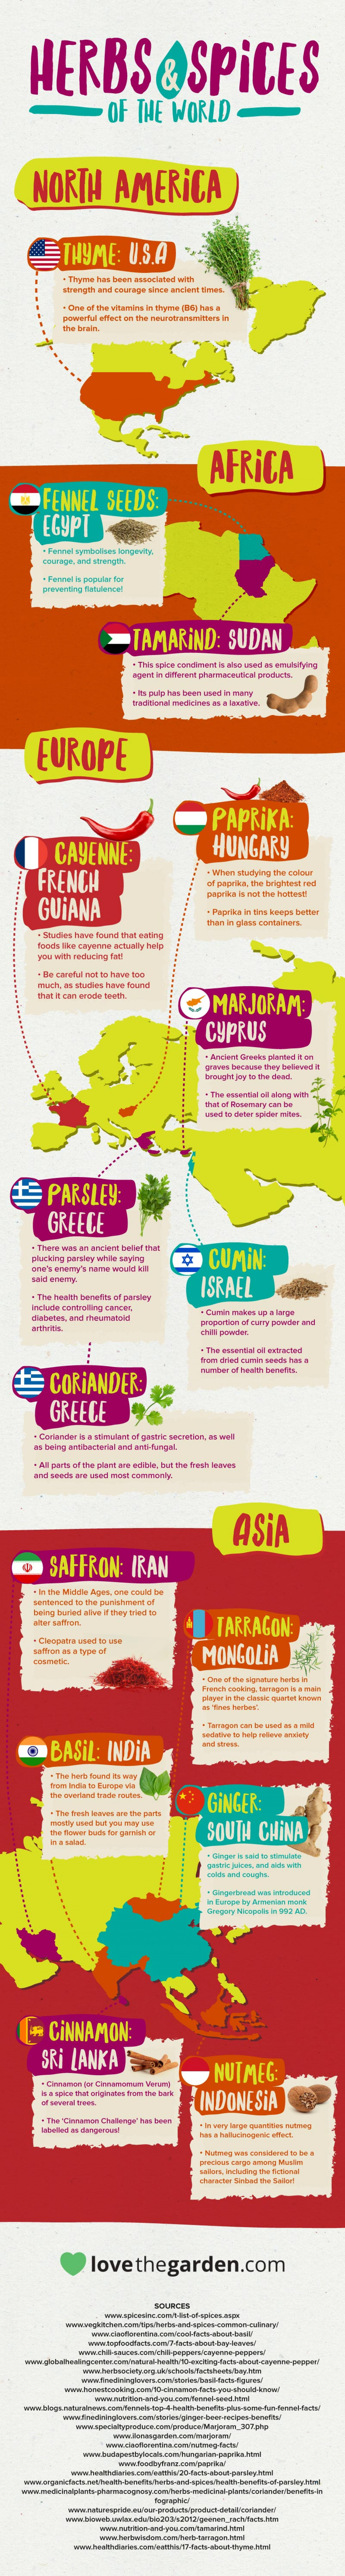 Herb & Spices of the World Infographic